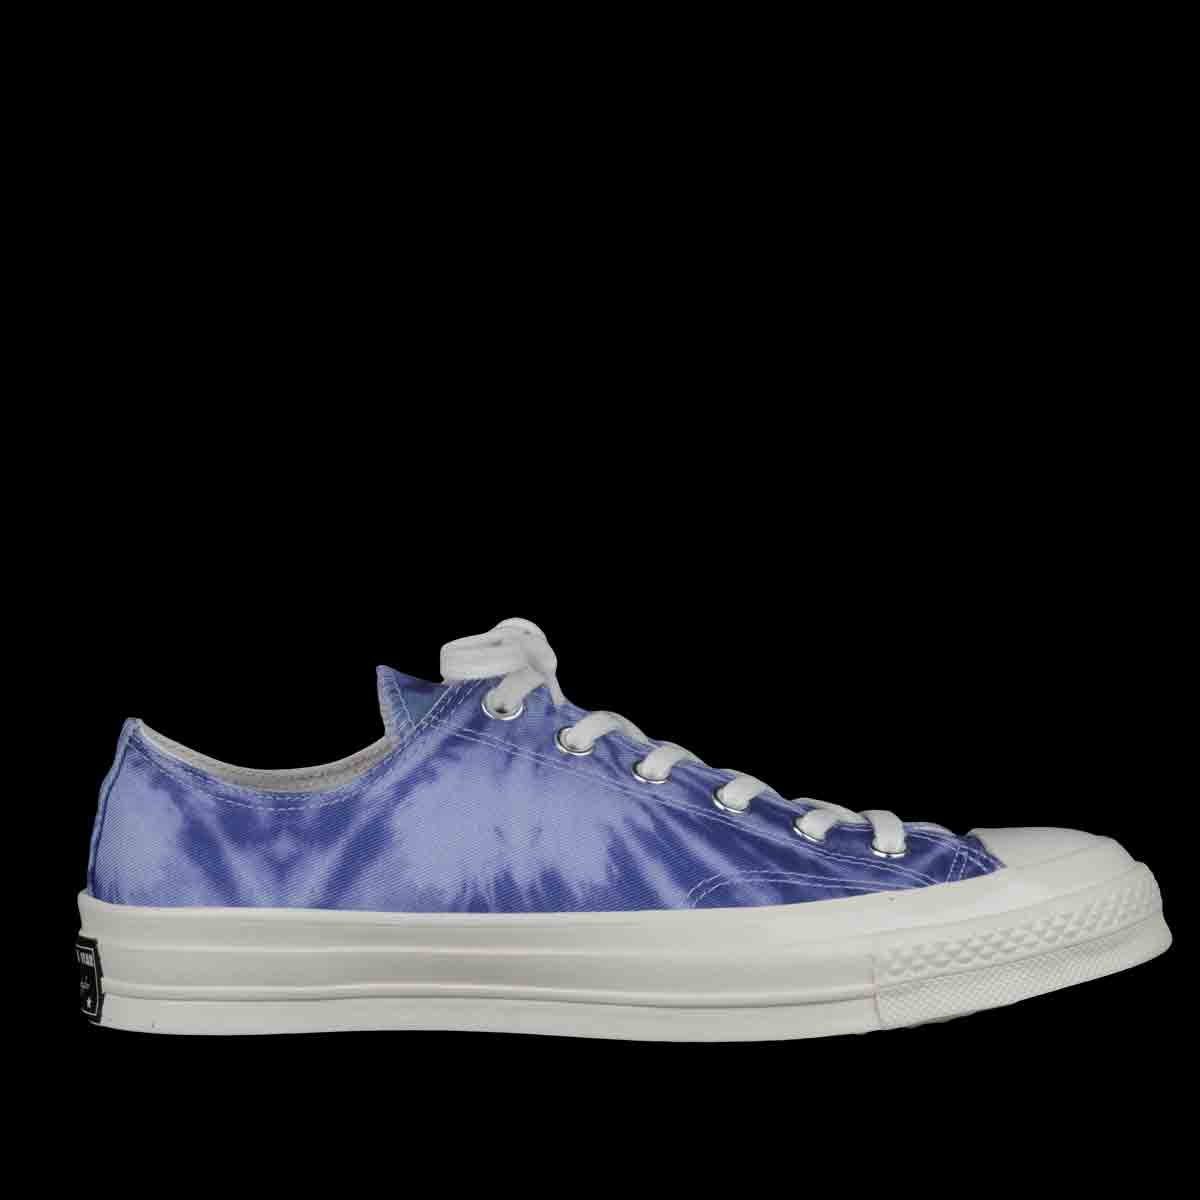 3d2a20936390 Converse - Chuck Taylor All Star 70 Ox in Court Purple   Shoreline Blue